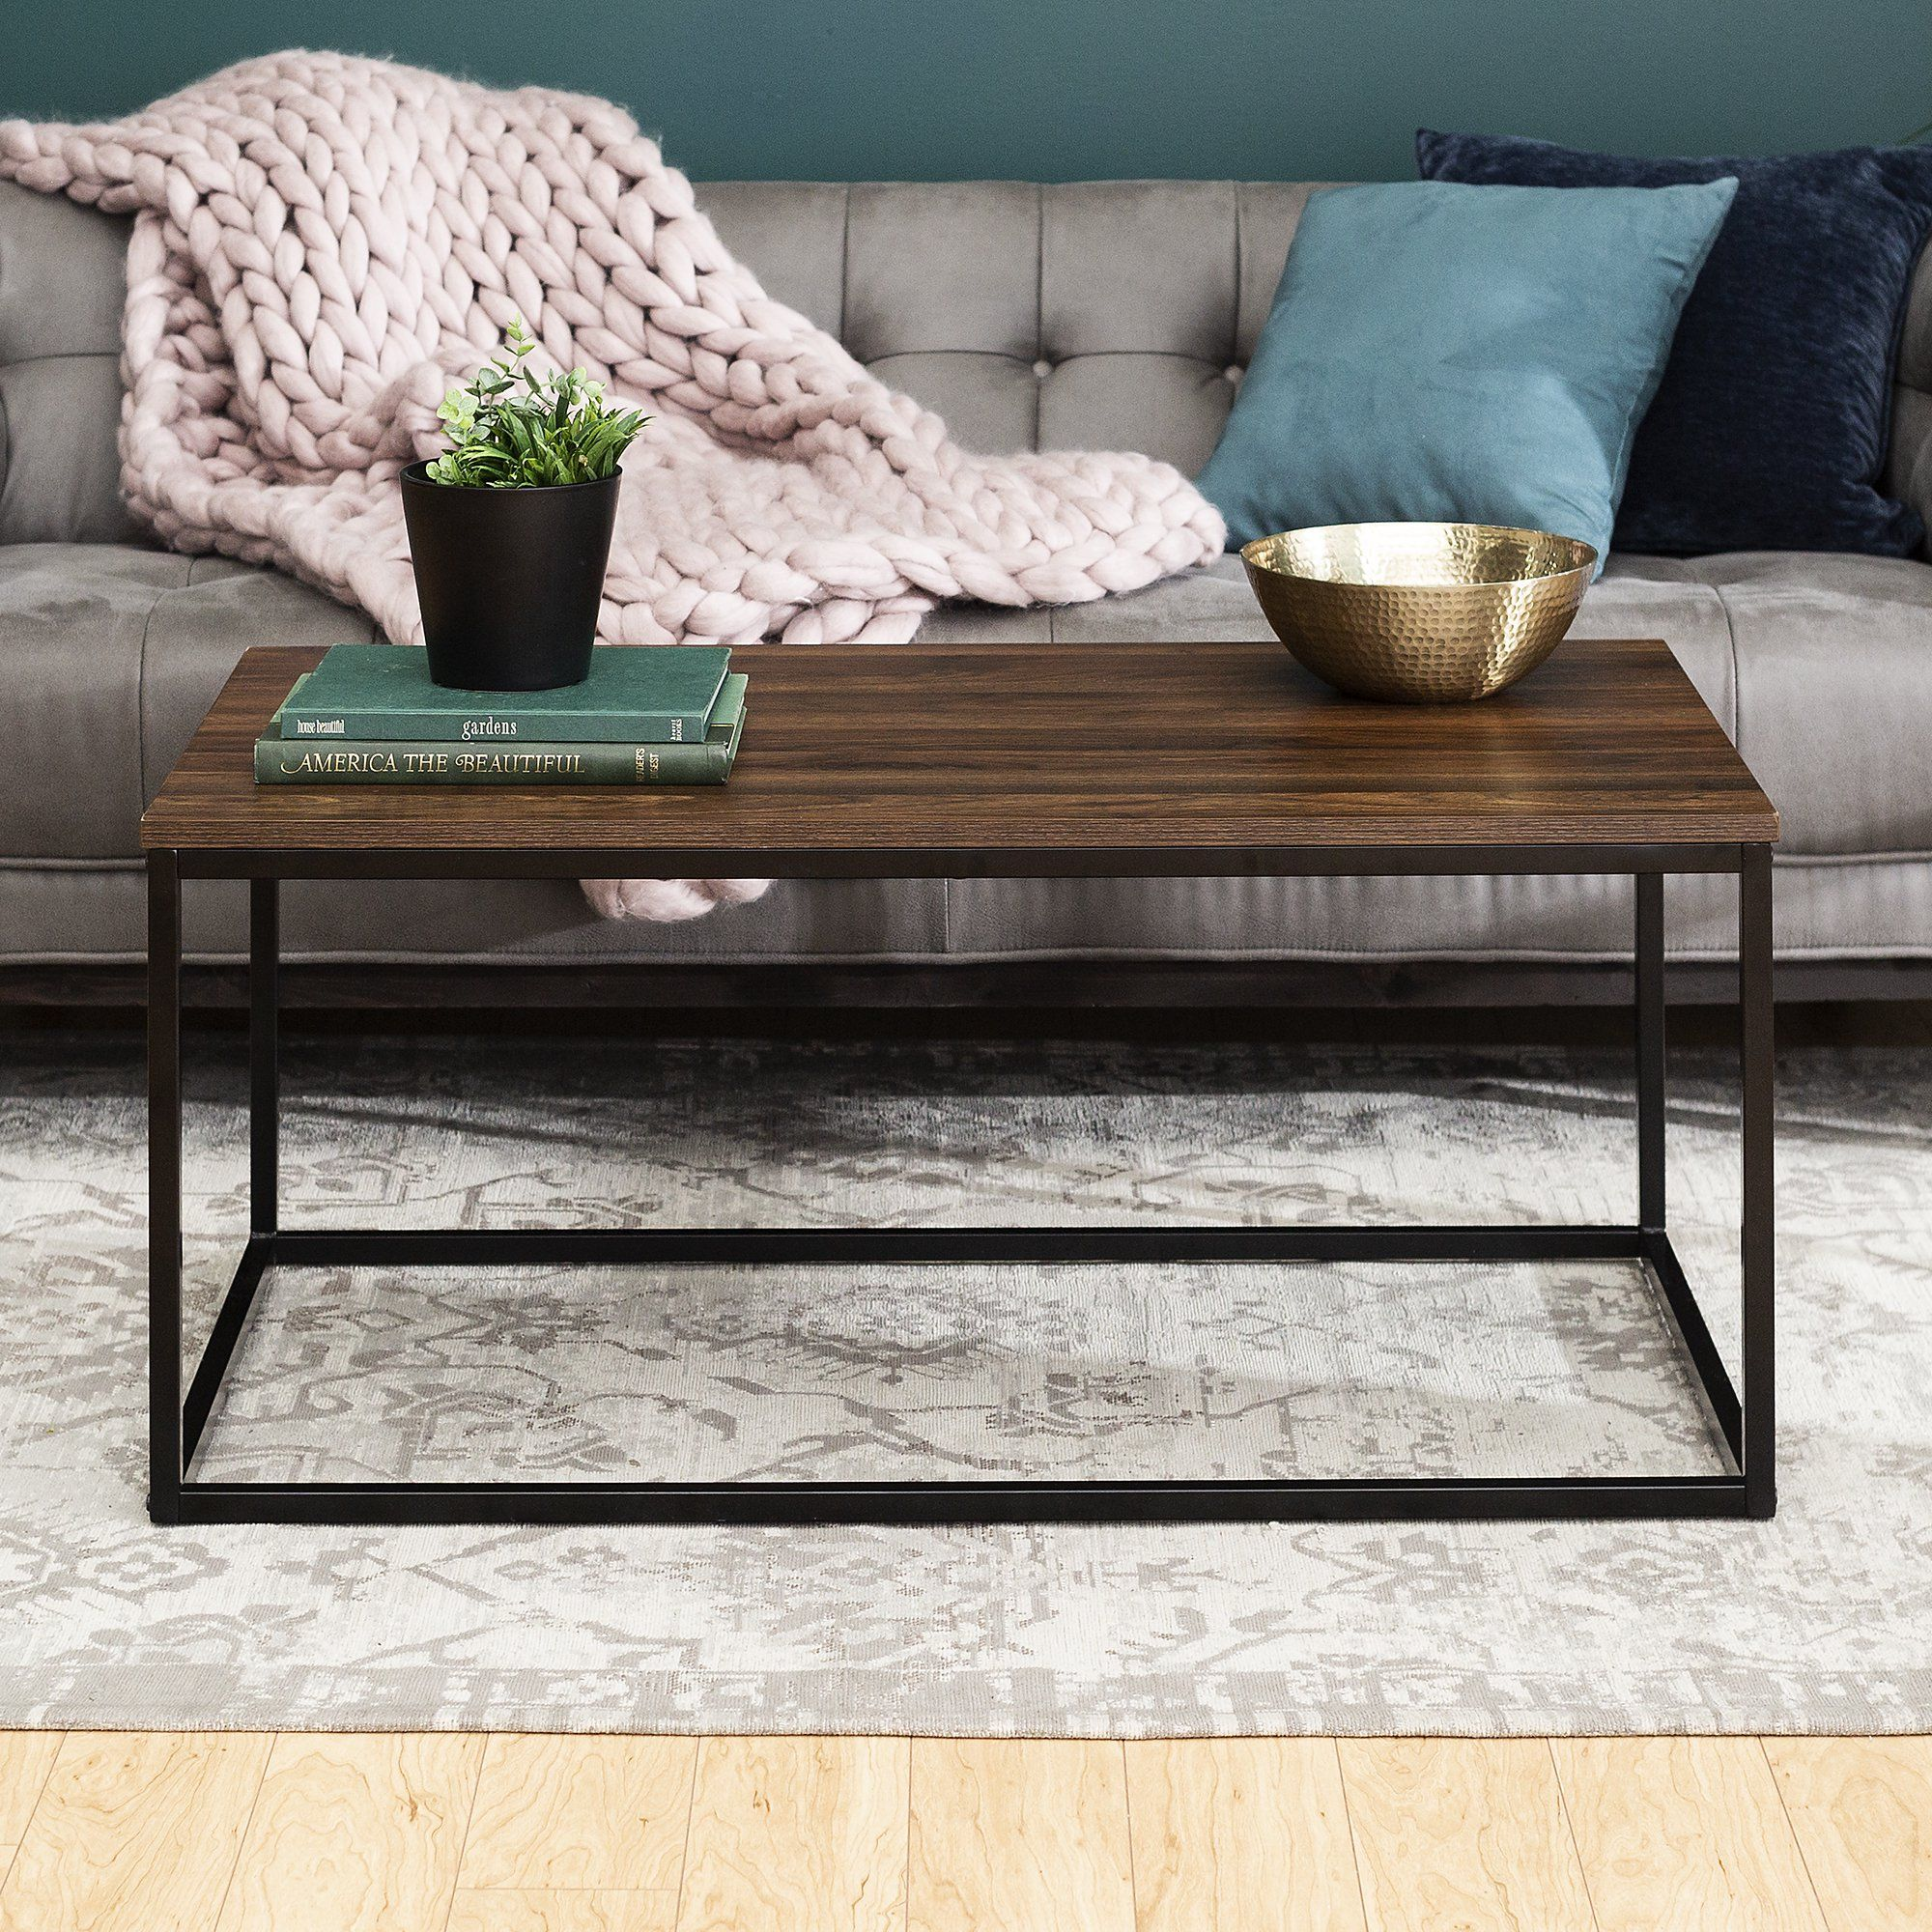 Transitional Dark Walnut Mixed Material Coffee Table By Manor Park Walmart Com In 2021 Coffee Table Table Decor Living Room Coffee Table For Small Living Room [ 2000 x 2000 Pixel ]